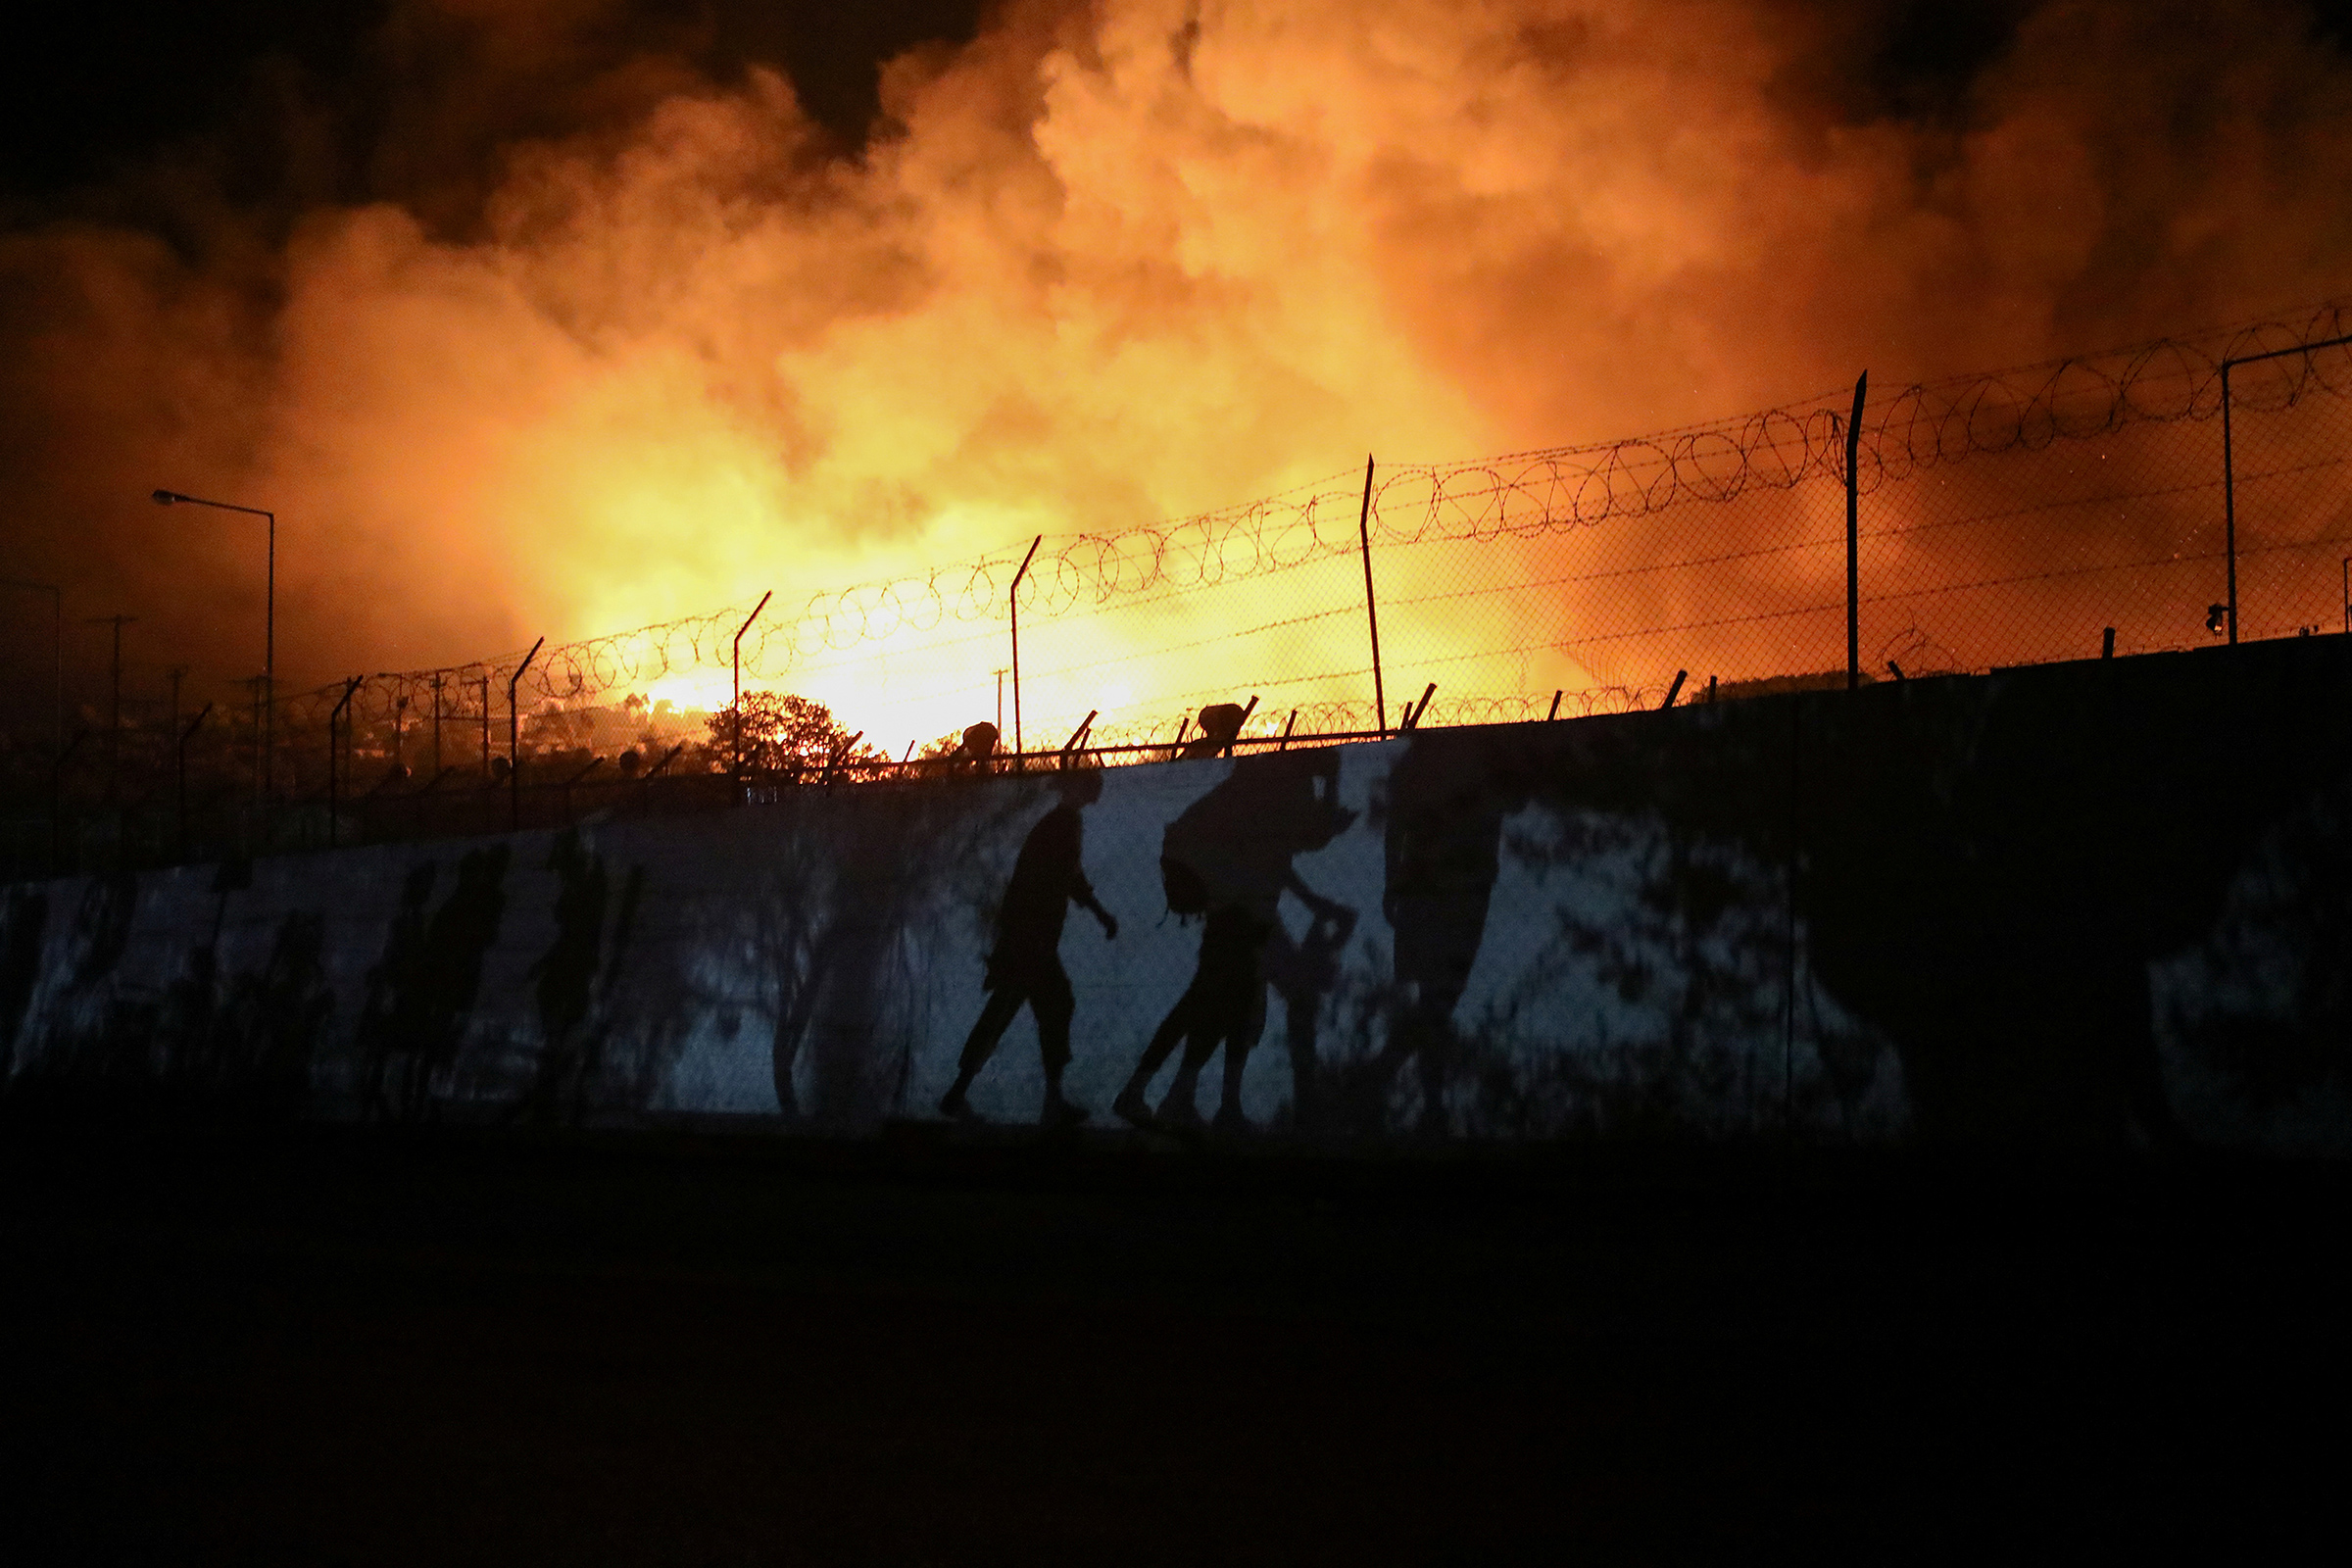 Shadows of refugees and migrants carrying their belongings are seen as they flee from a fire at the Moria camp on the Greek island of Lesbos on Sept. 9.